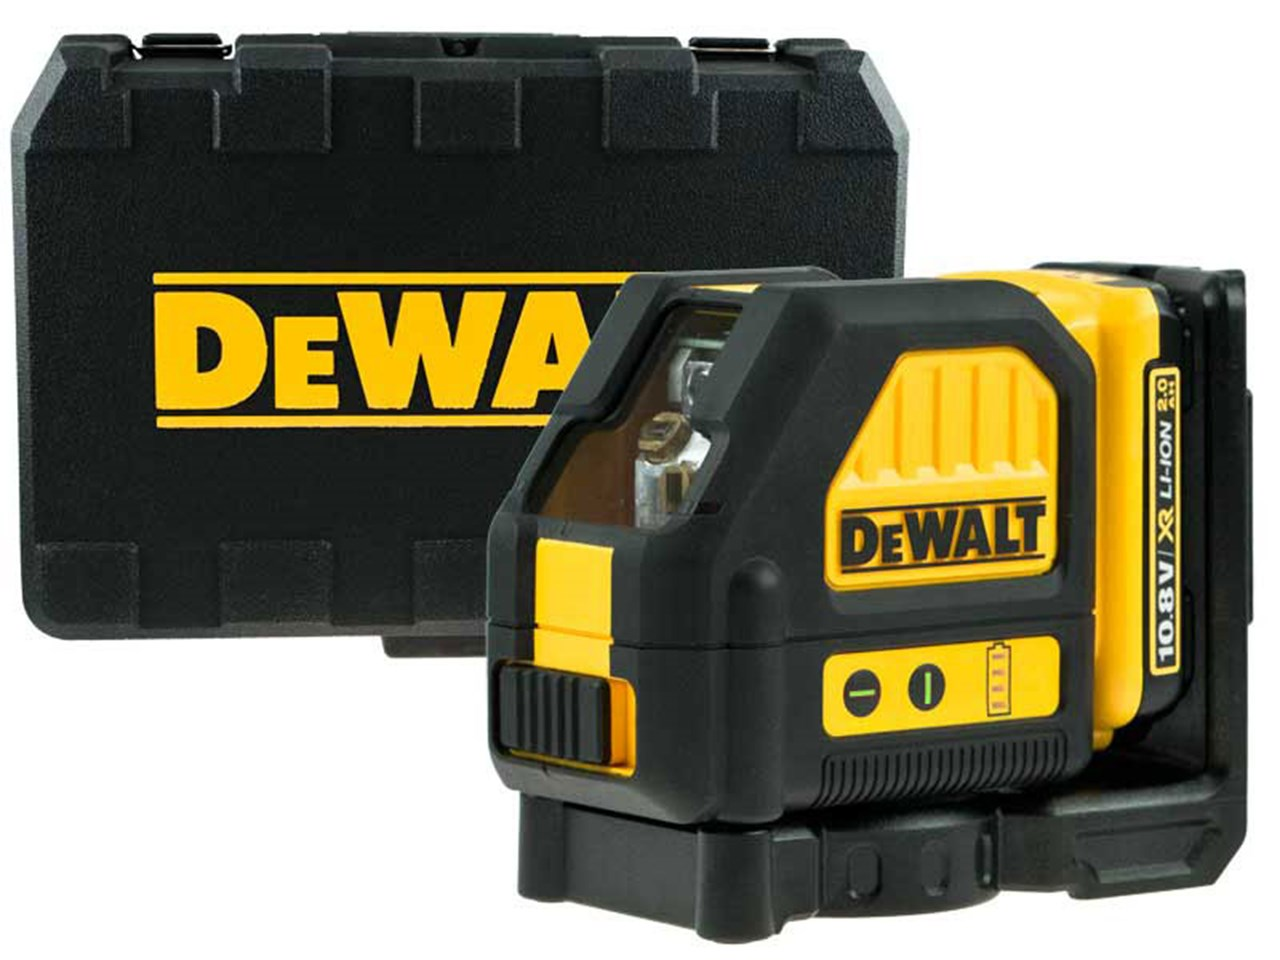 Dewalt Dew088d1g 10 8v 2 0ah Li Ion Self Level Cross Line